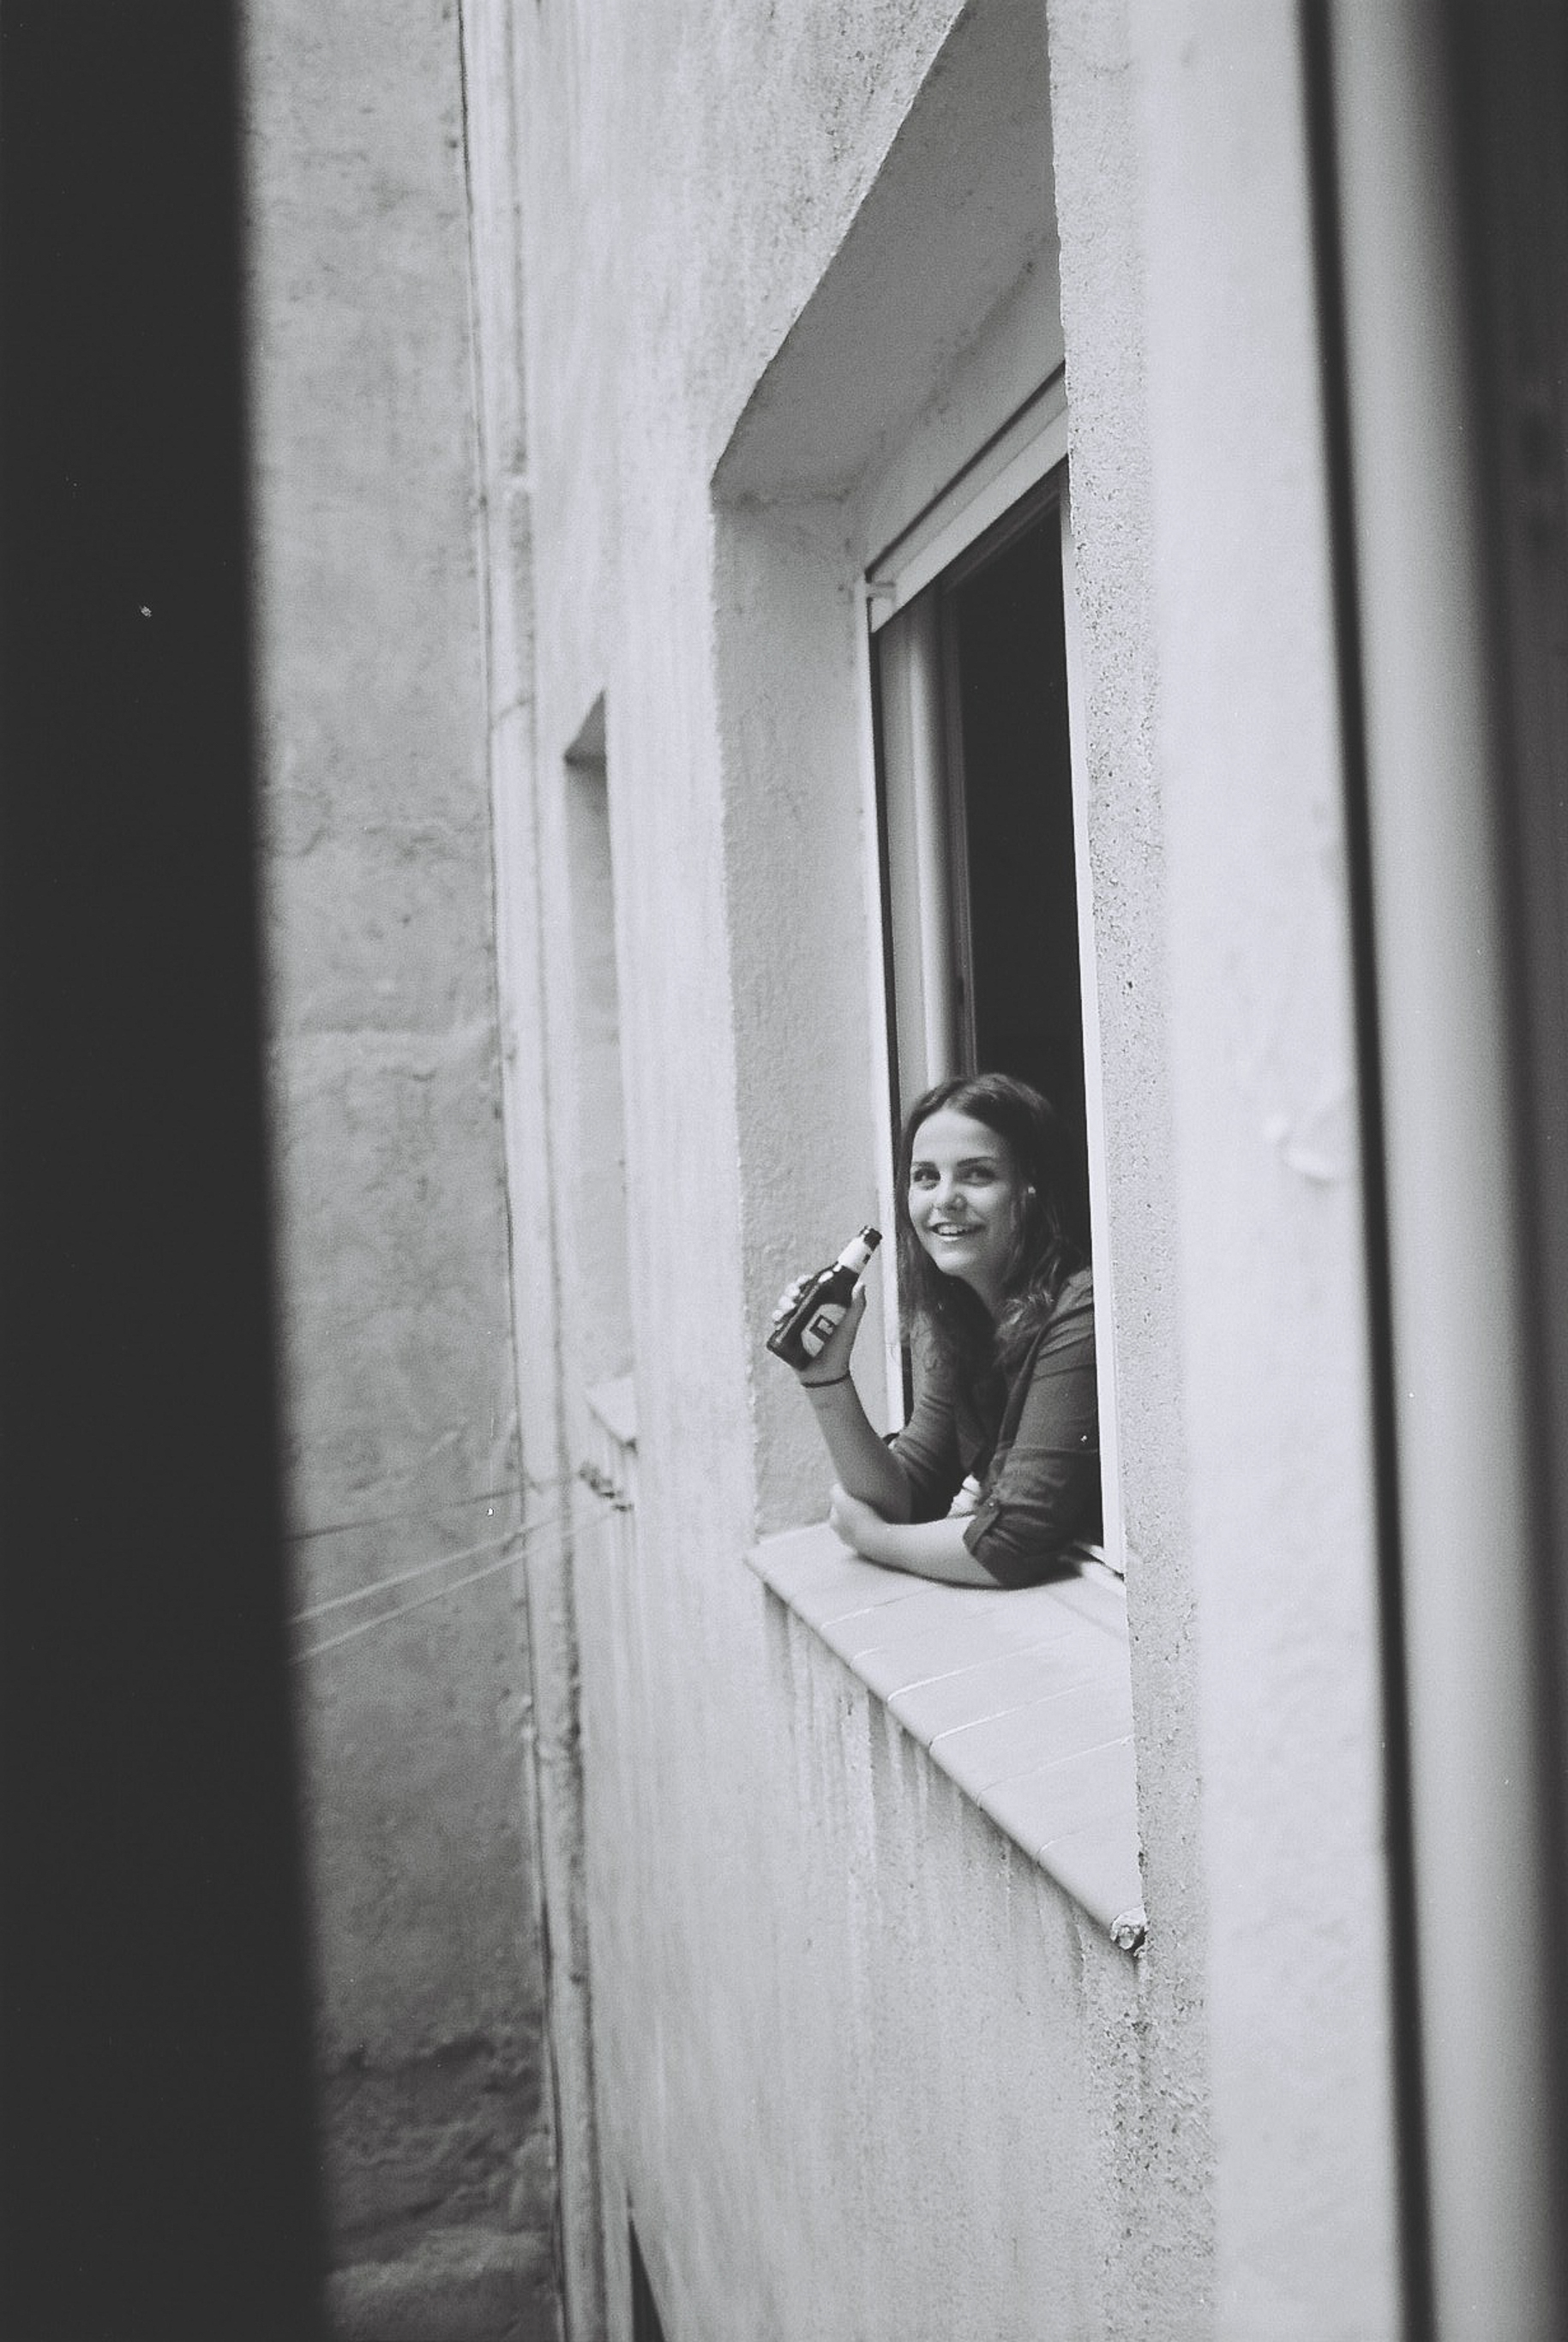 I was recently moved to Madrid and I was sharing a flat with some German people. From my room's window I saw a girl drinking a beer and I started to talk with her. I found her so interesting, and although I had know her that moment, I asked her if I could take a photo.